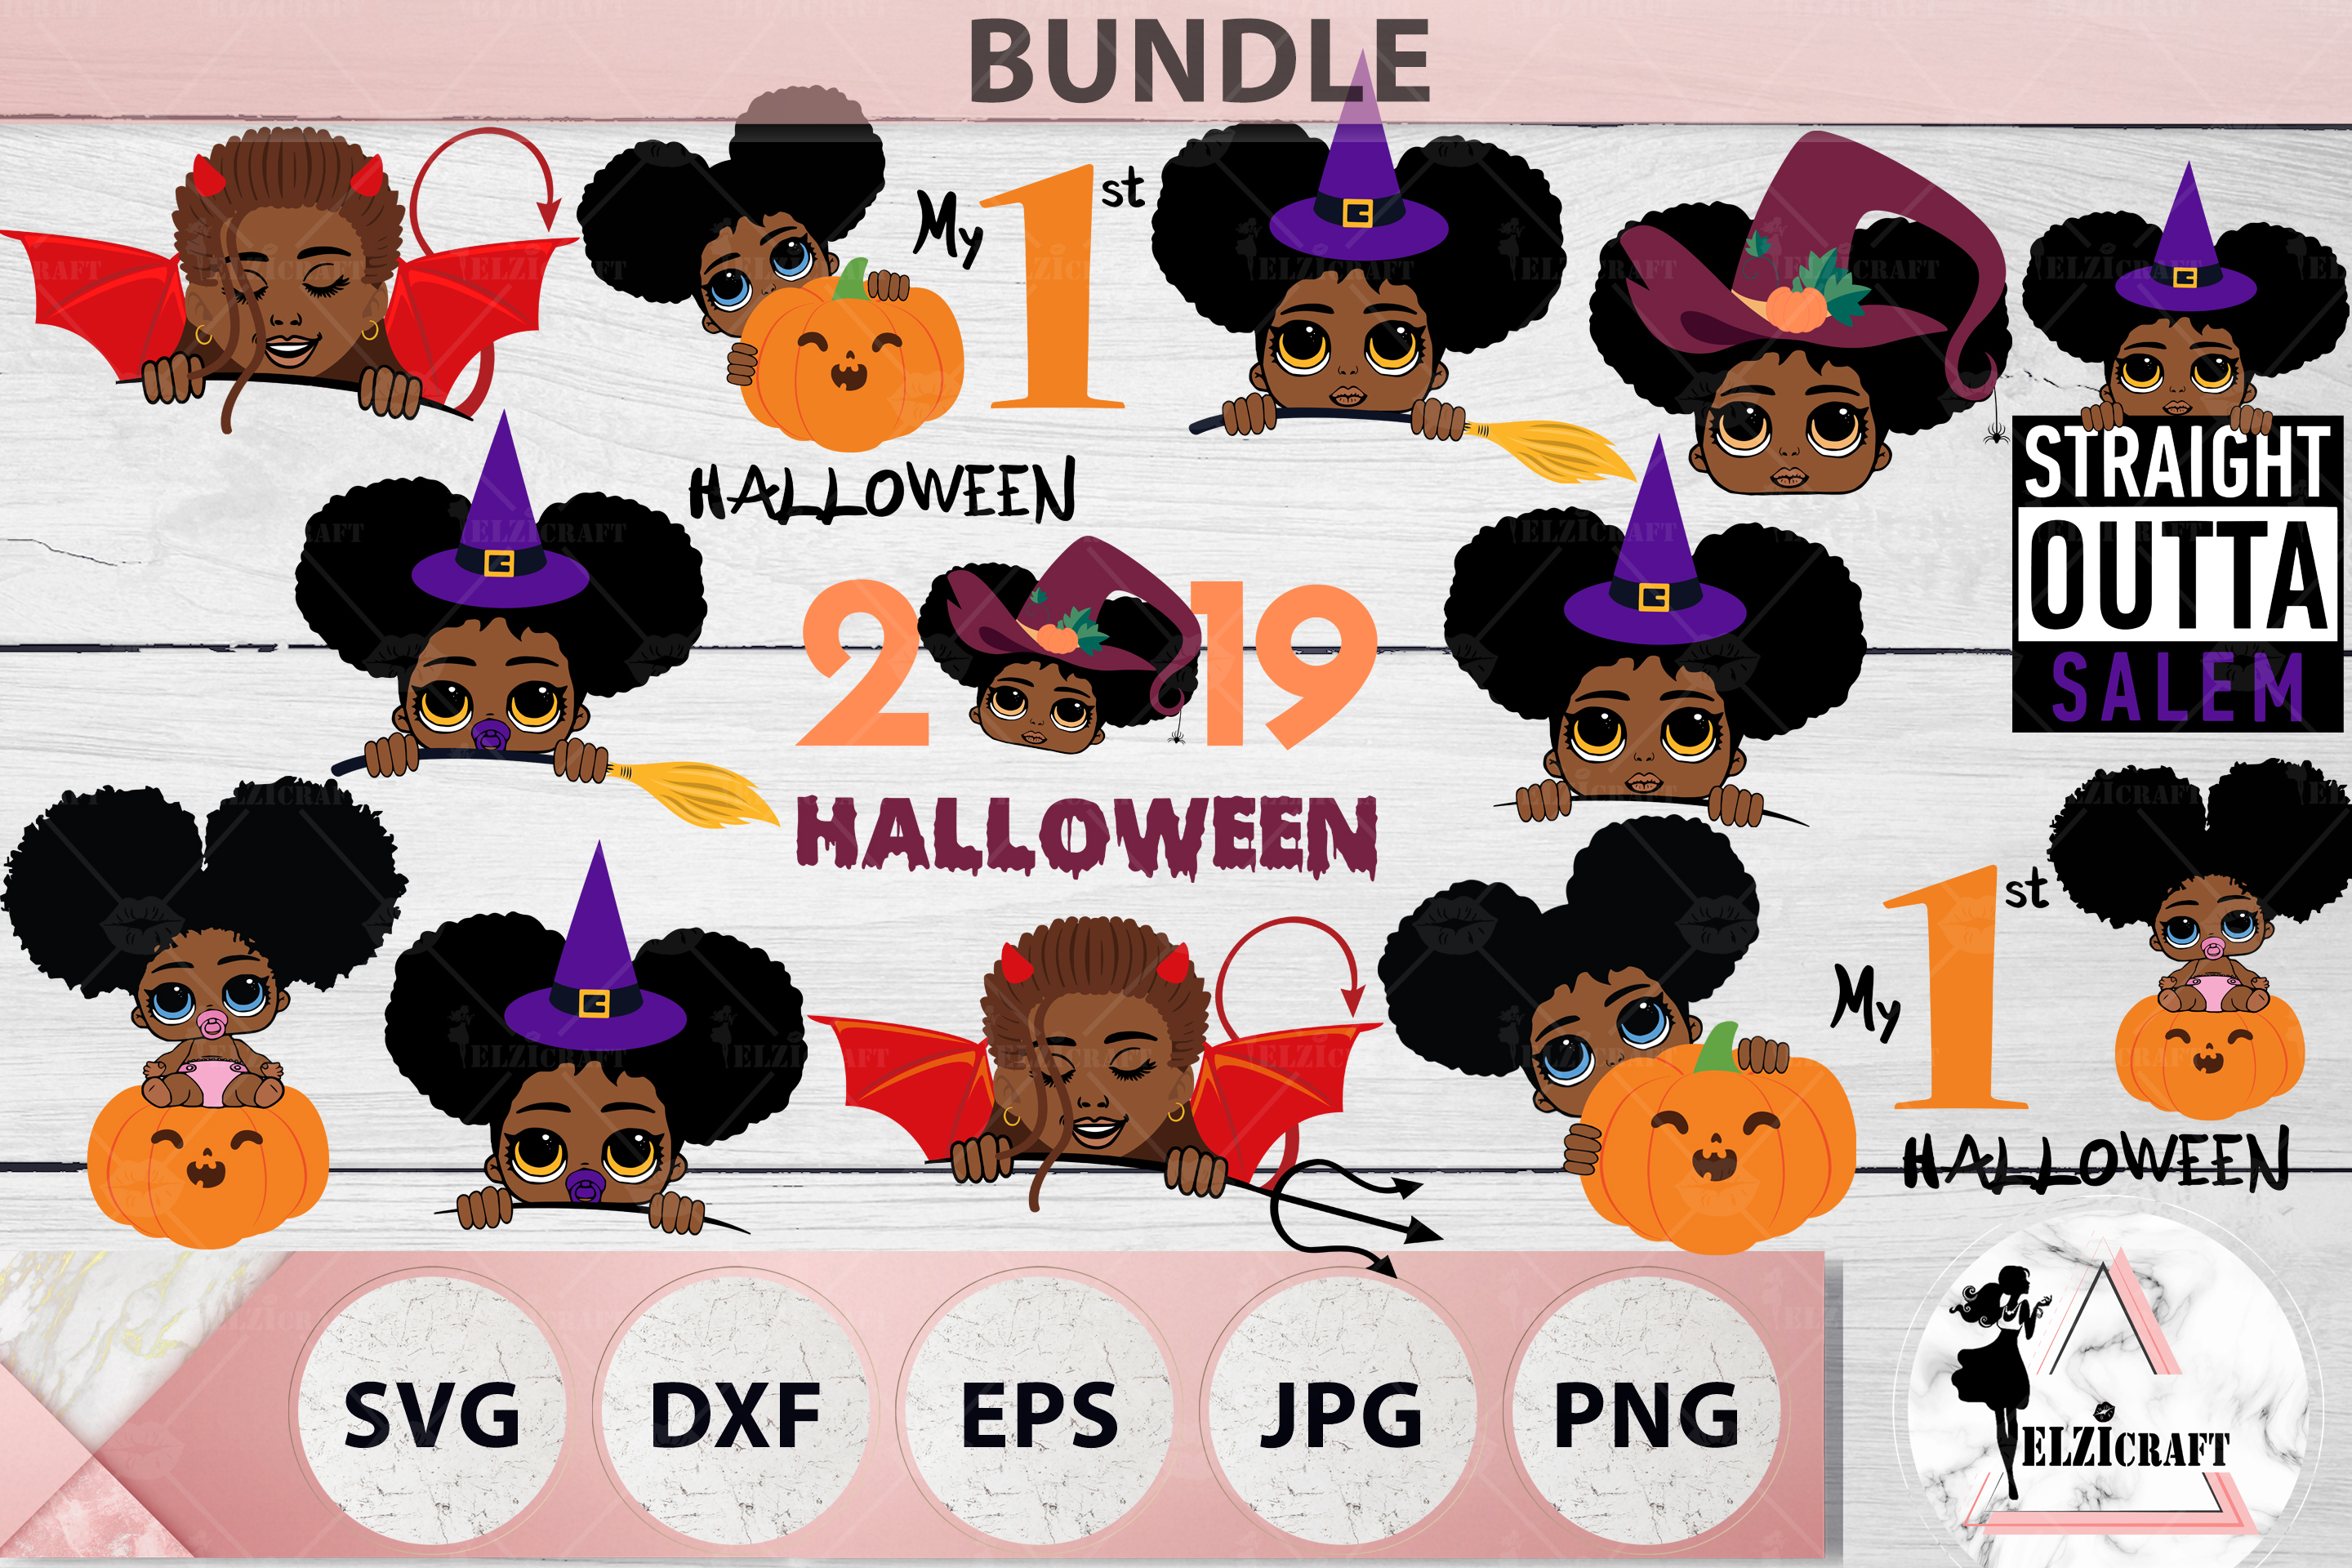 HALLOWEEN AFRO BUNDLE SVG Cut Files example image 3